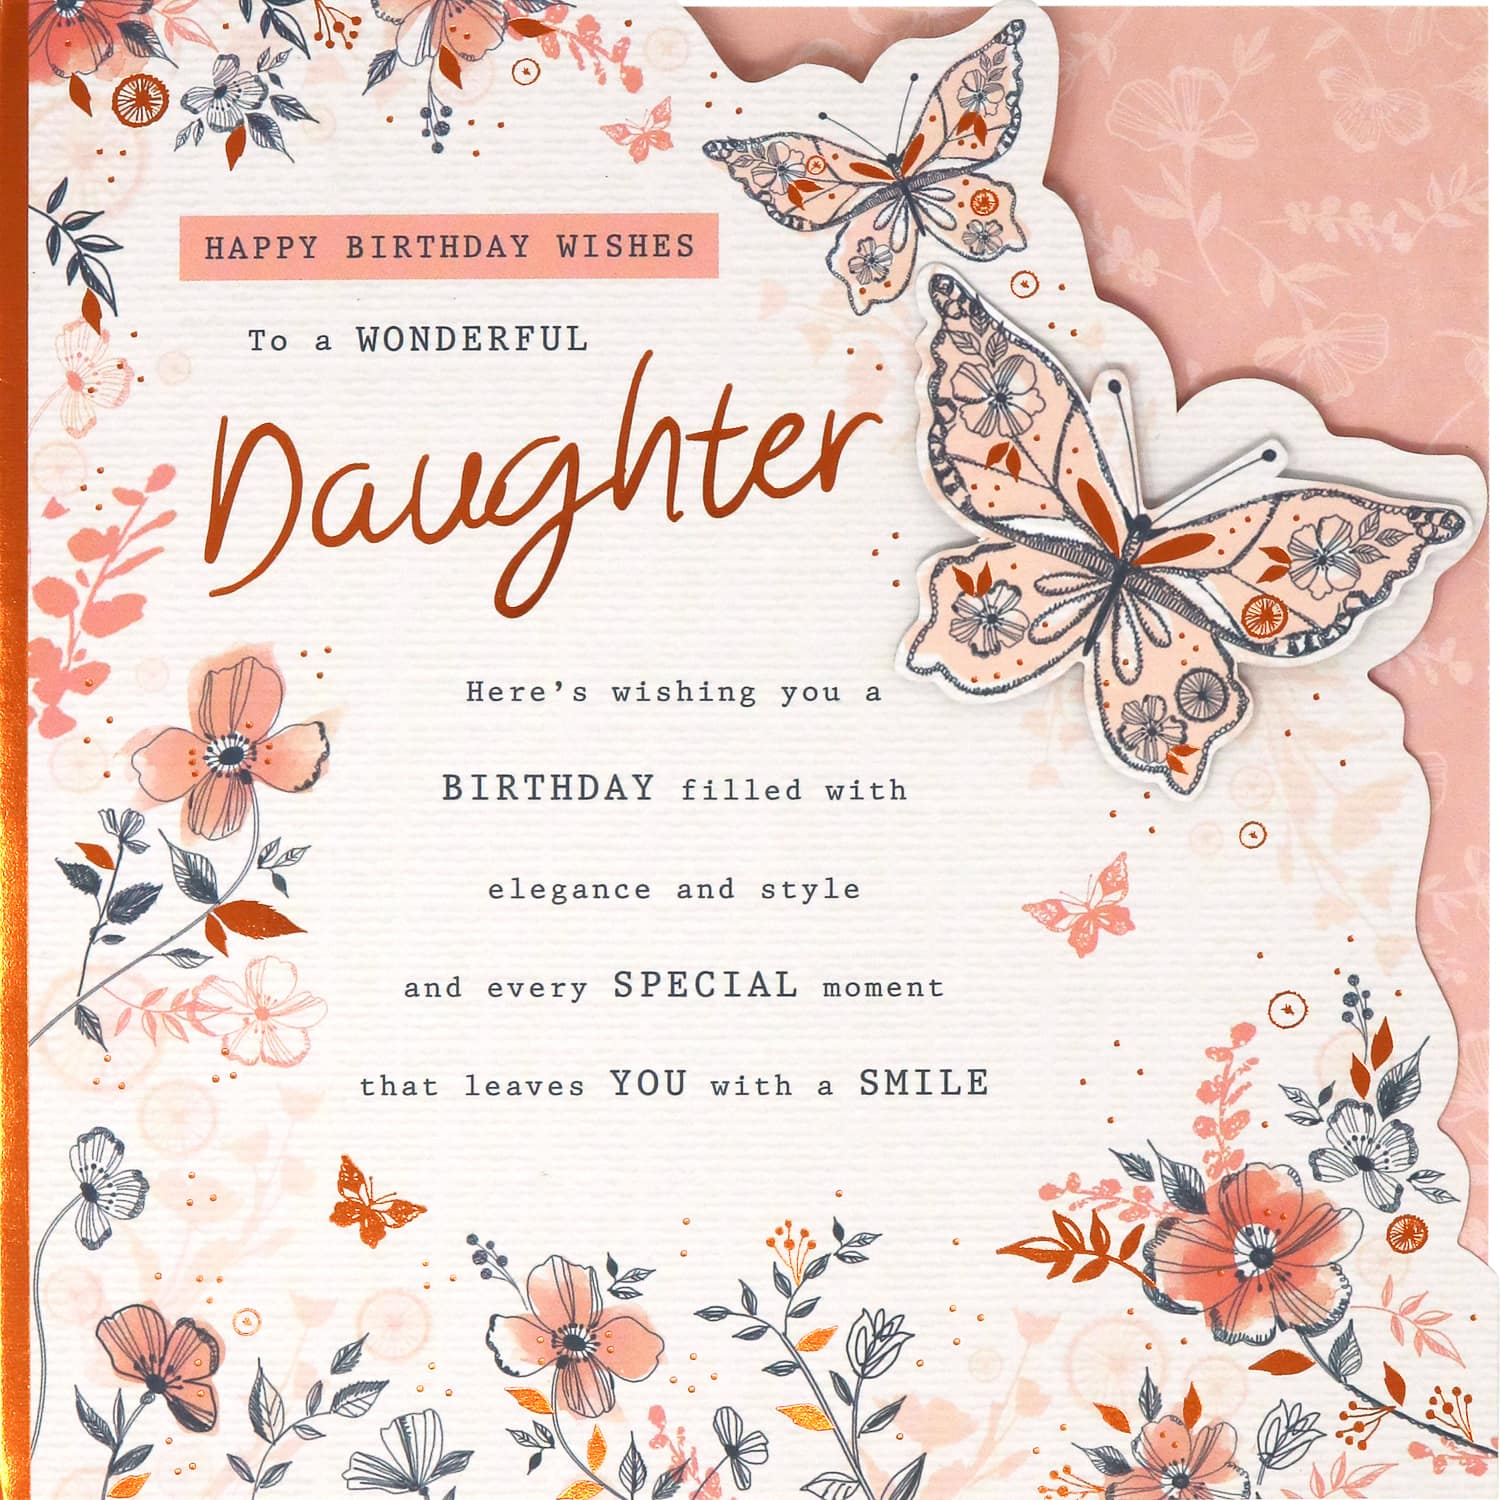 Miraculous Wonderful Daughter Birthday Card Cards Bm Funny Birthday Cards Online Inifodamsfinfo